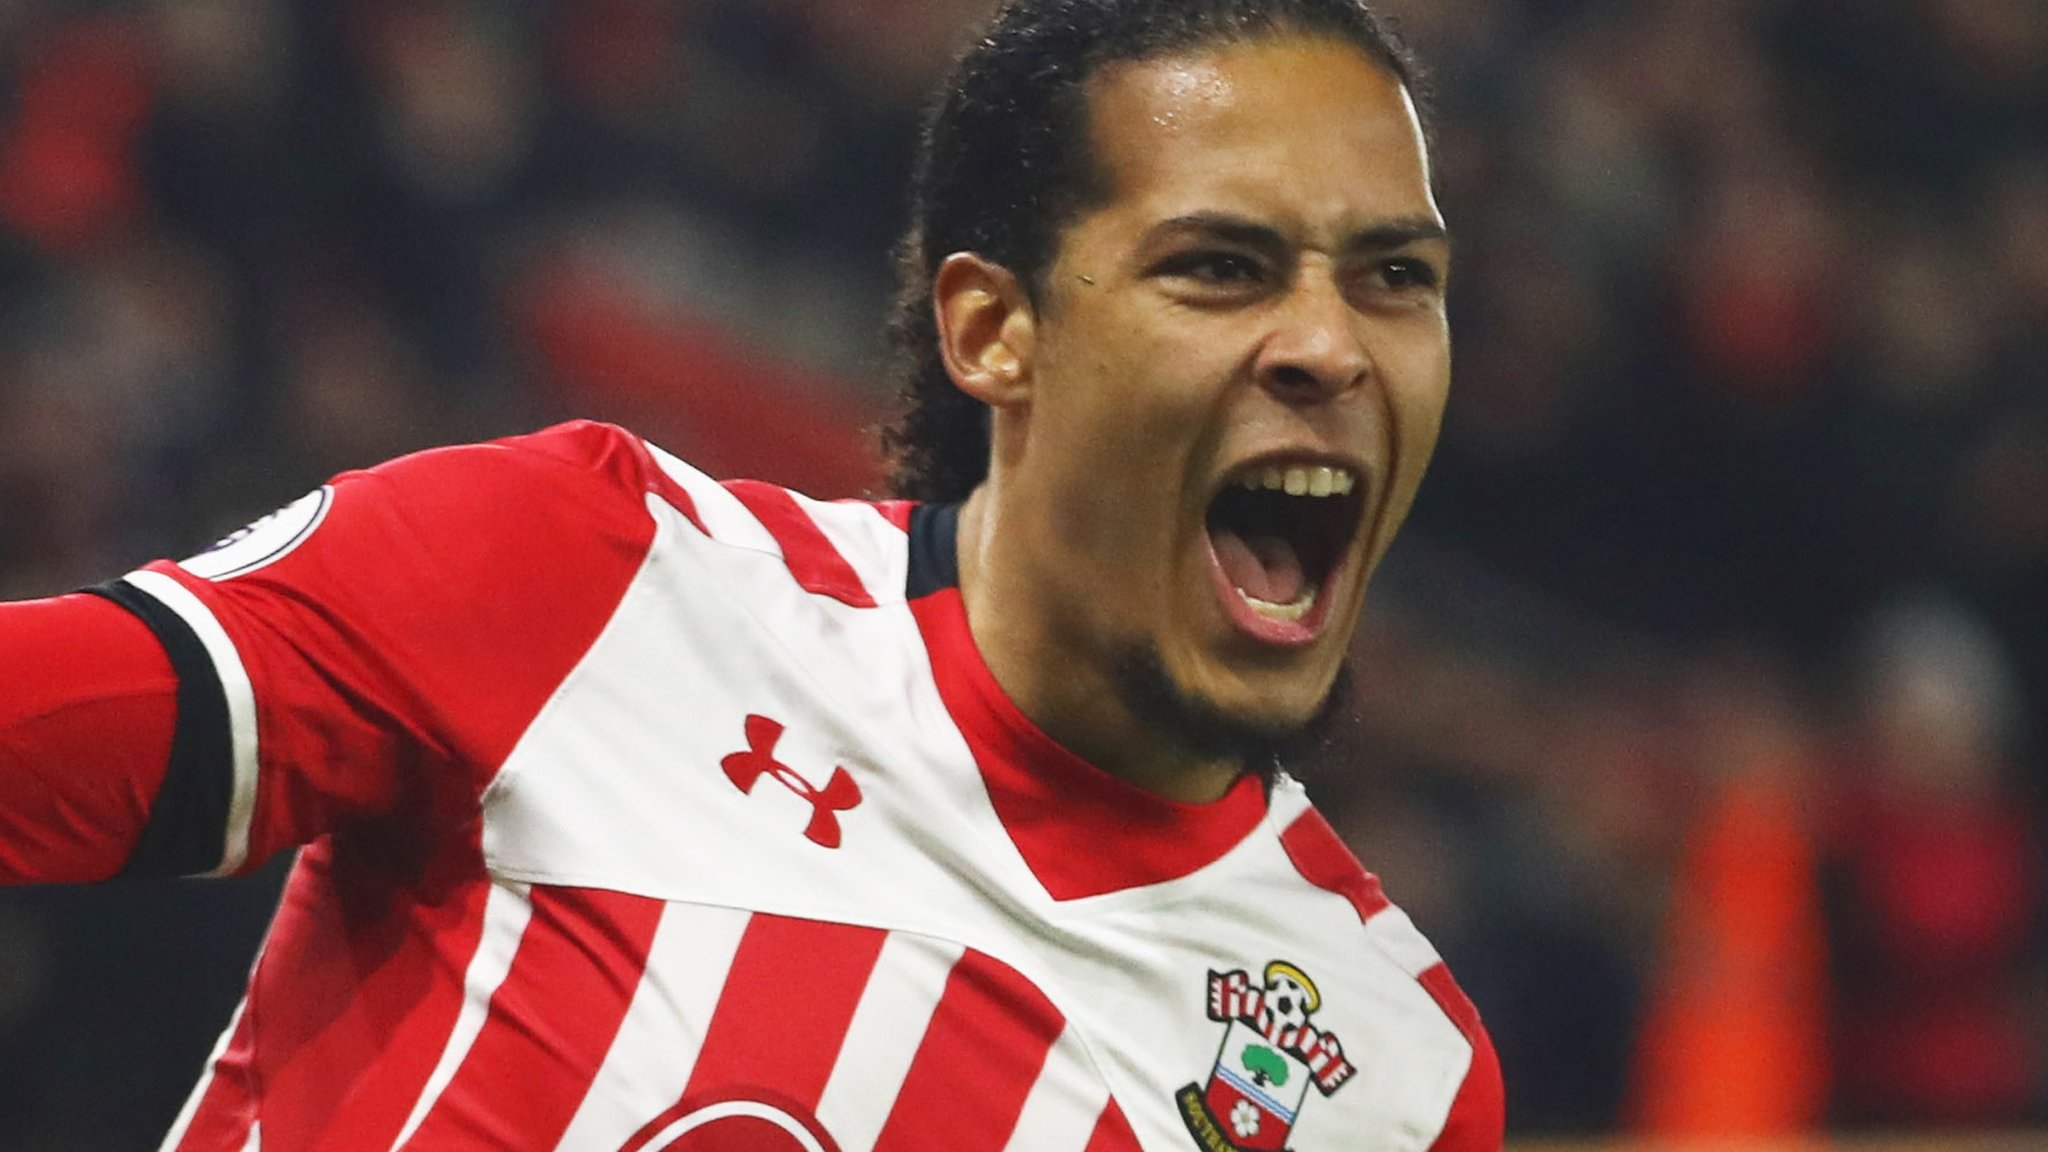 Van Dijk training alone and wants move, says Saints boss